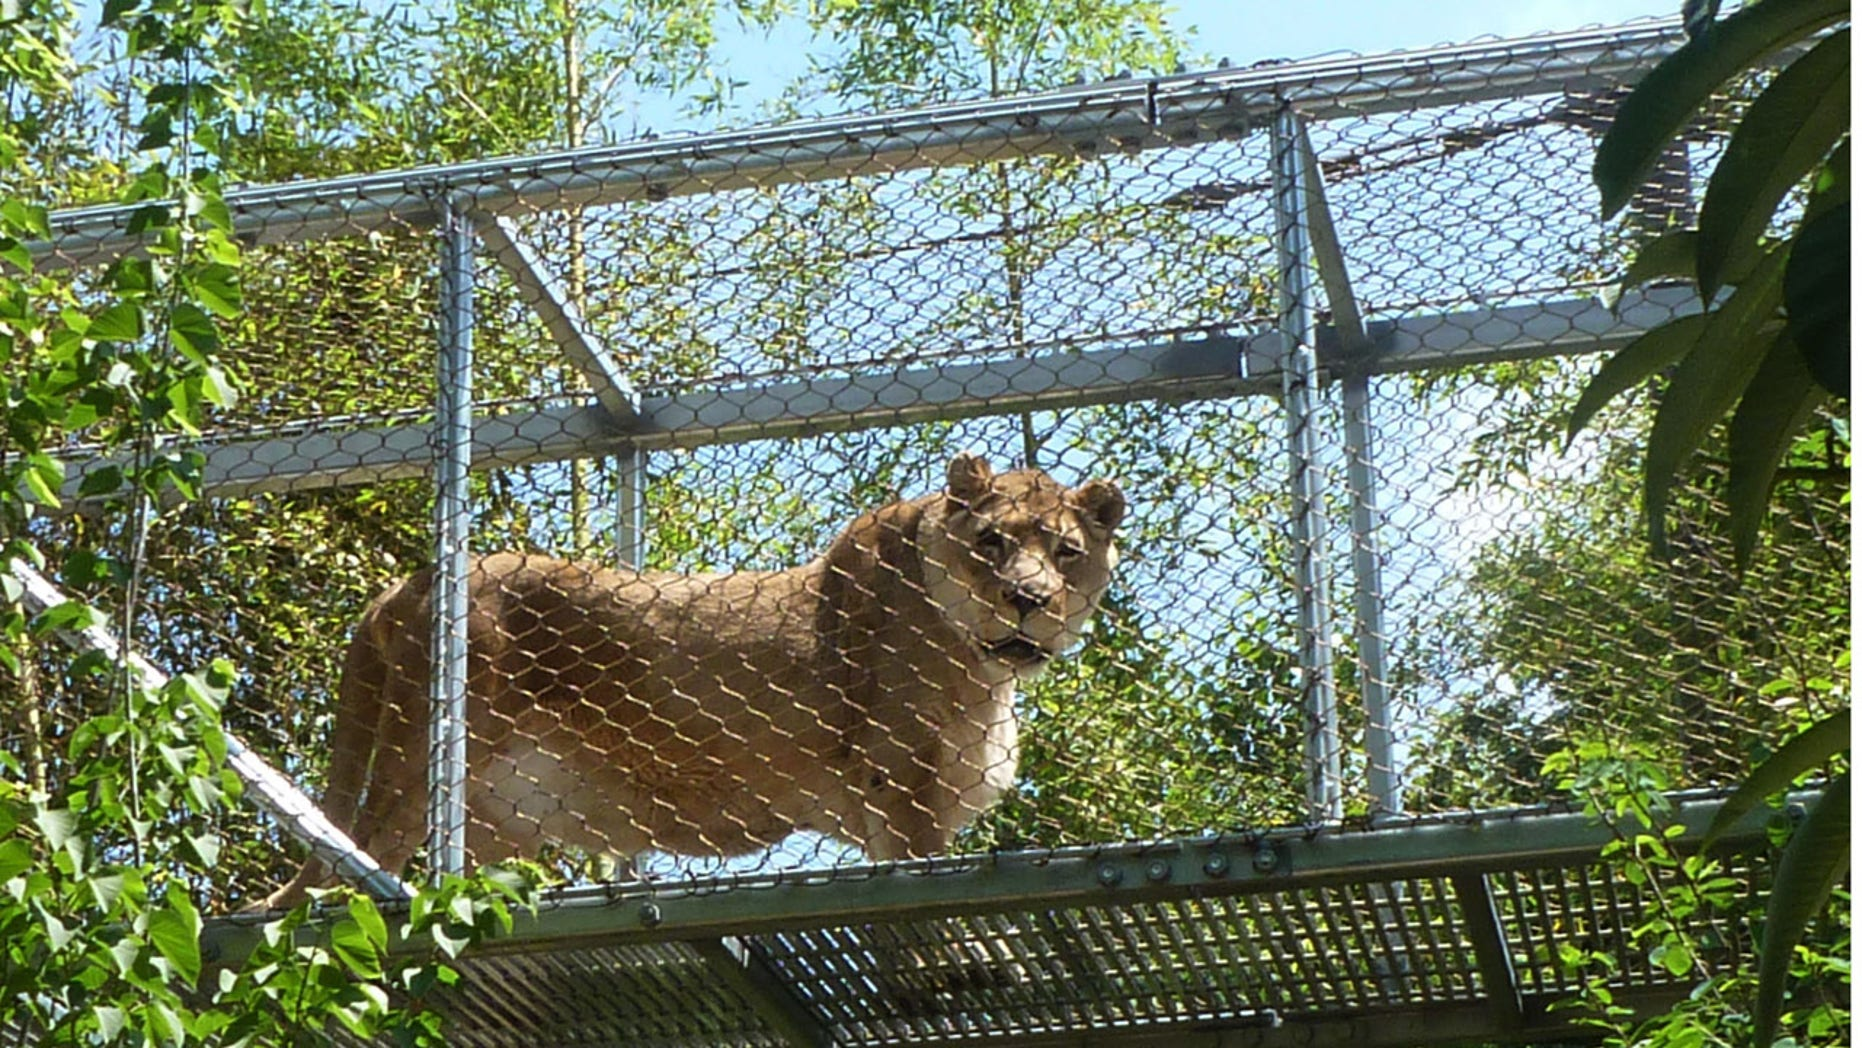 This undated photo provided by the Philadelphia Zoo shows an African lion named Zenda at the zoo.